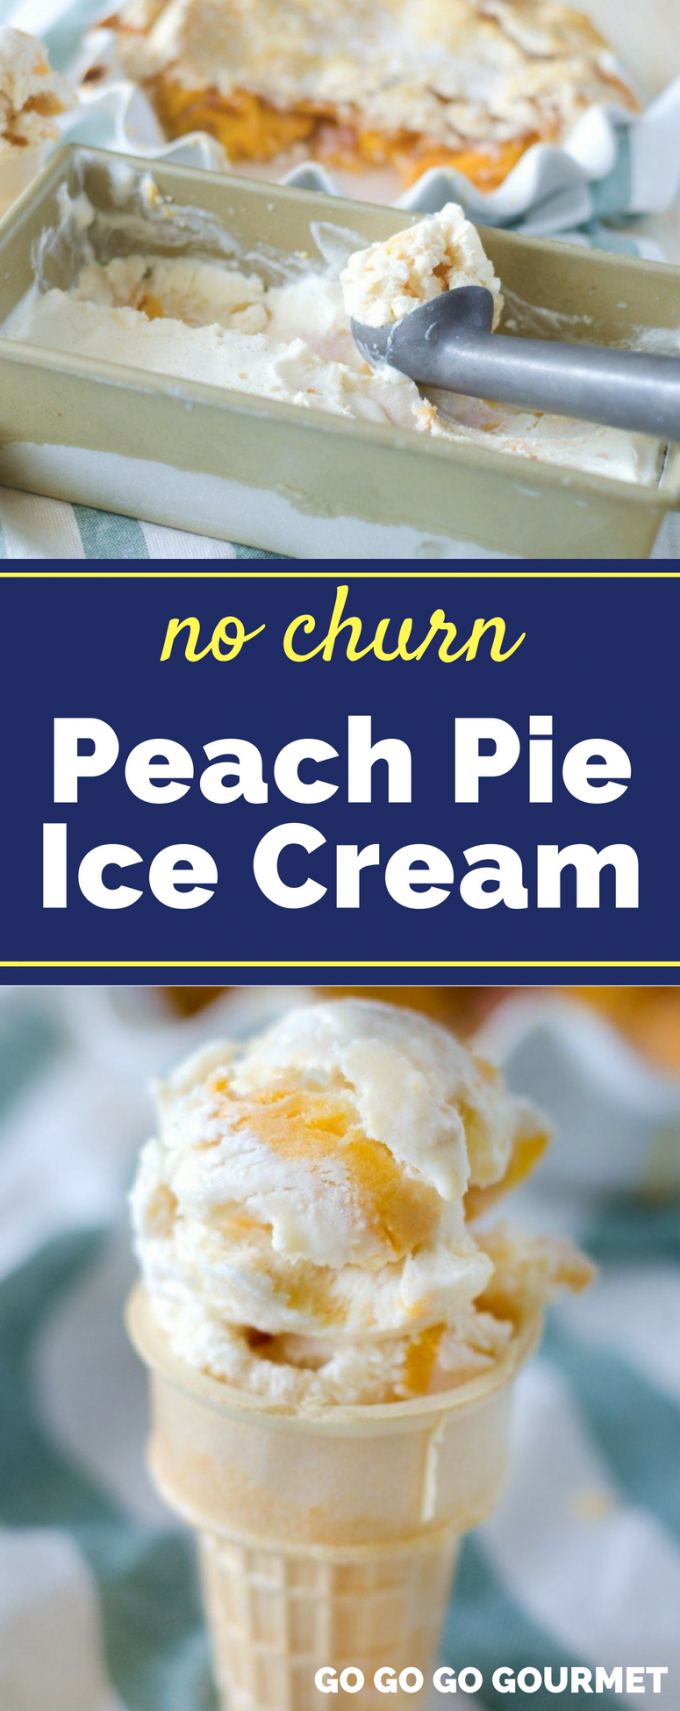 This easy No Churn Peach Pie Ice Cream recipe has everything you love about peach pie turned into a cool, sweet dessert for summer! It has all the benefits of homemade ice cream without using an ice cream maker. #nochurnicecream #peachpieicecream #summerdesserts #gogogogourmet via @gogogogourmet